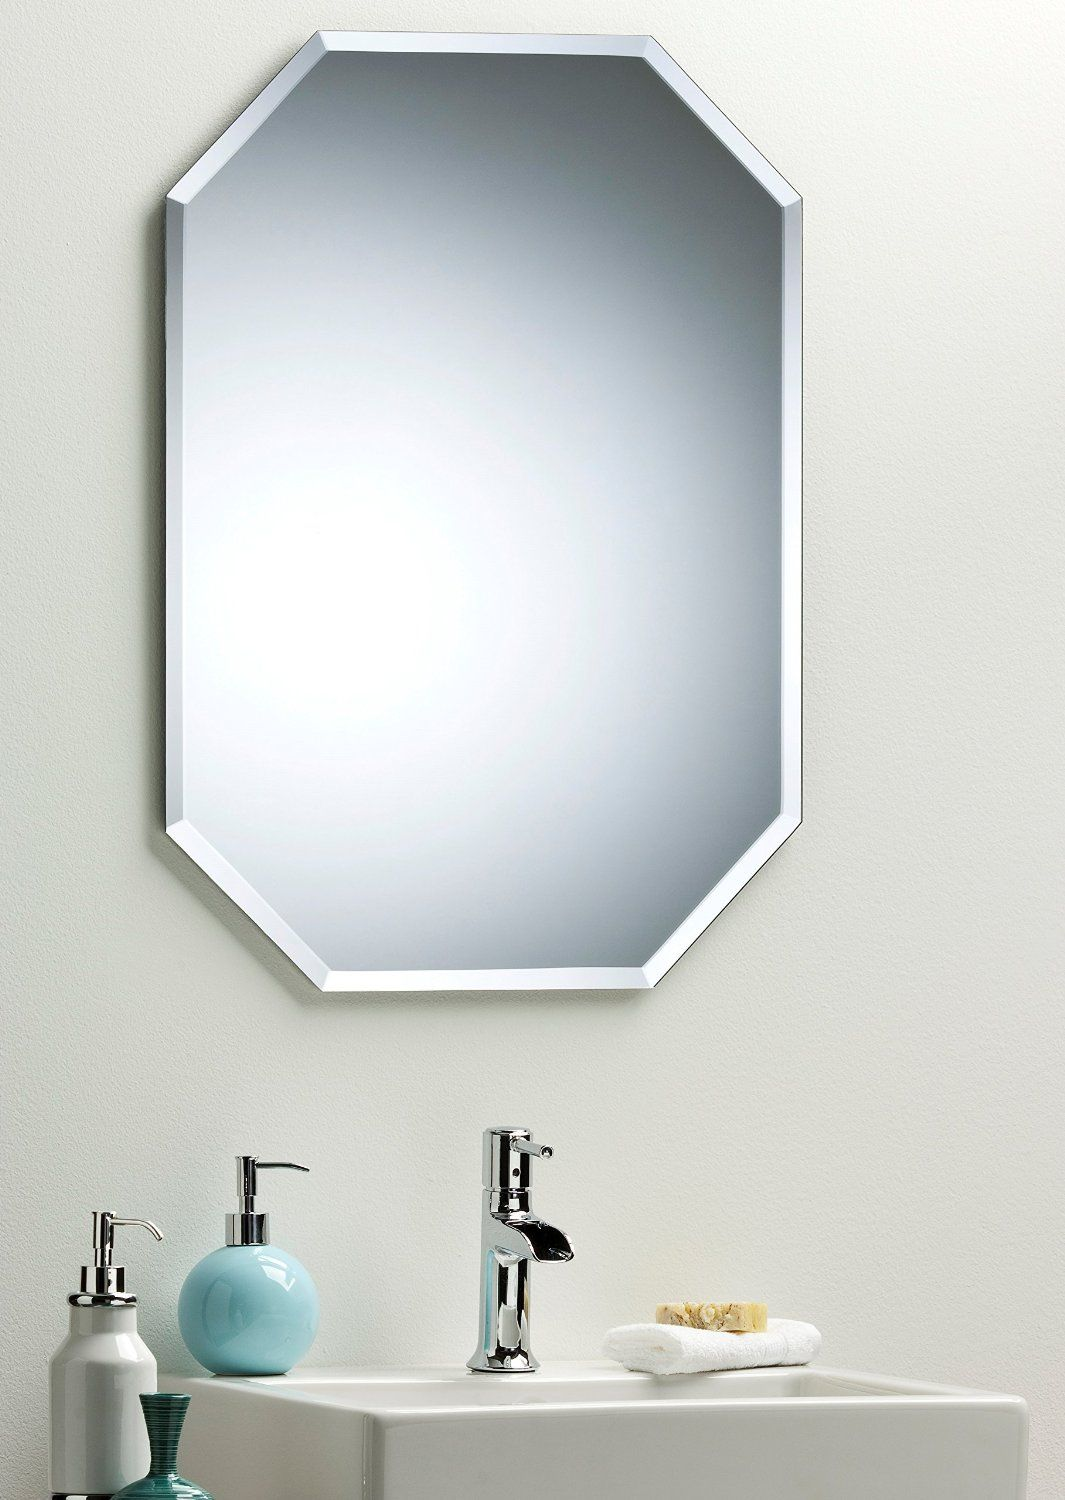 Bathroom Mirror Amazon octagon bathroom wall mirror modern stylish with bevel plain 2